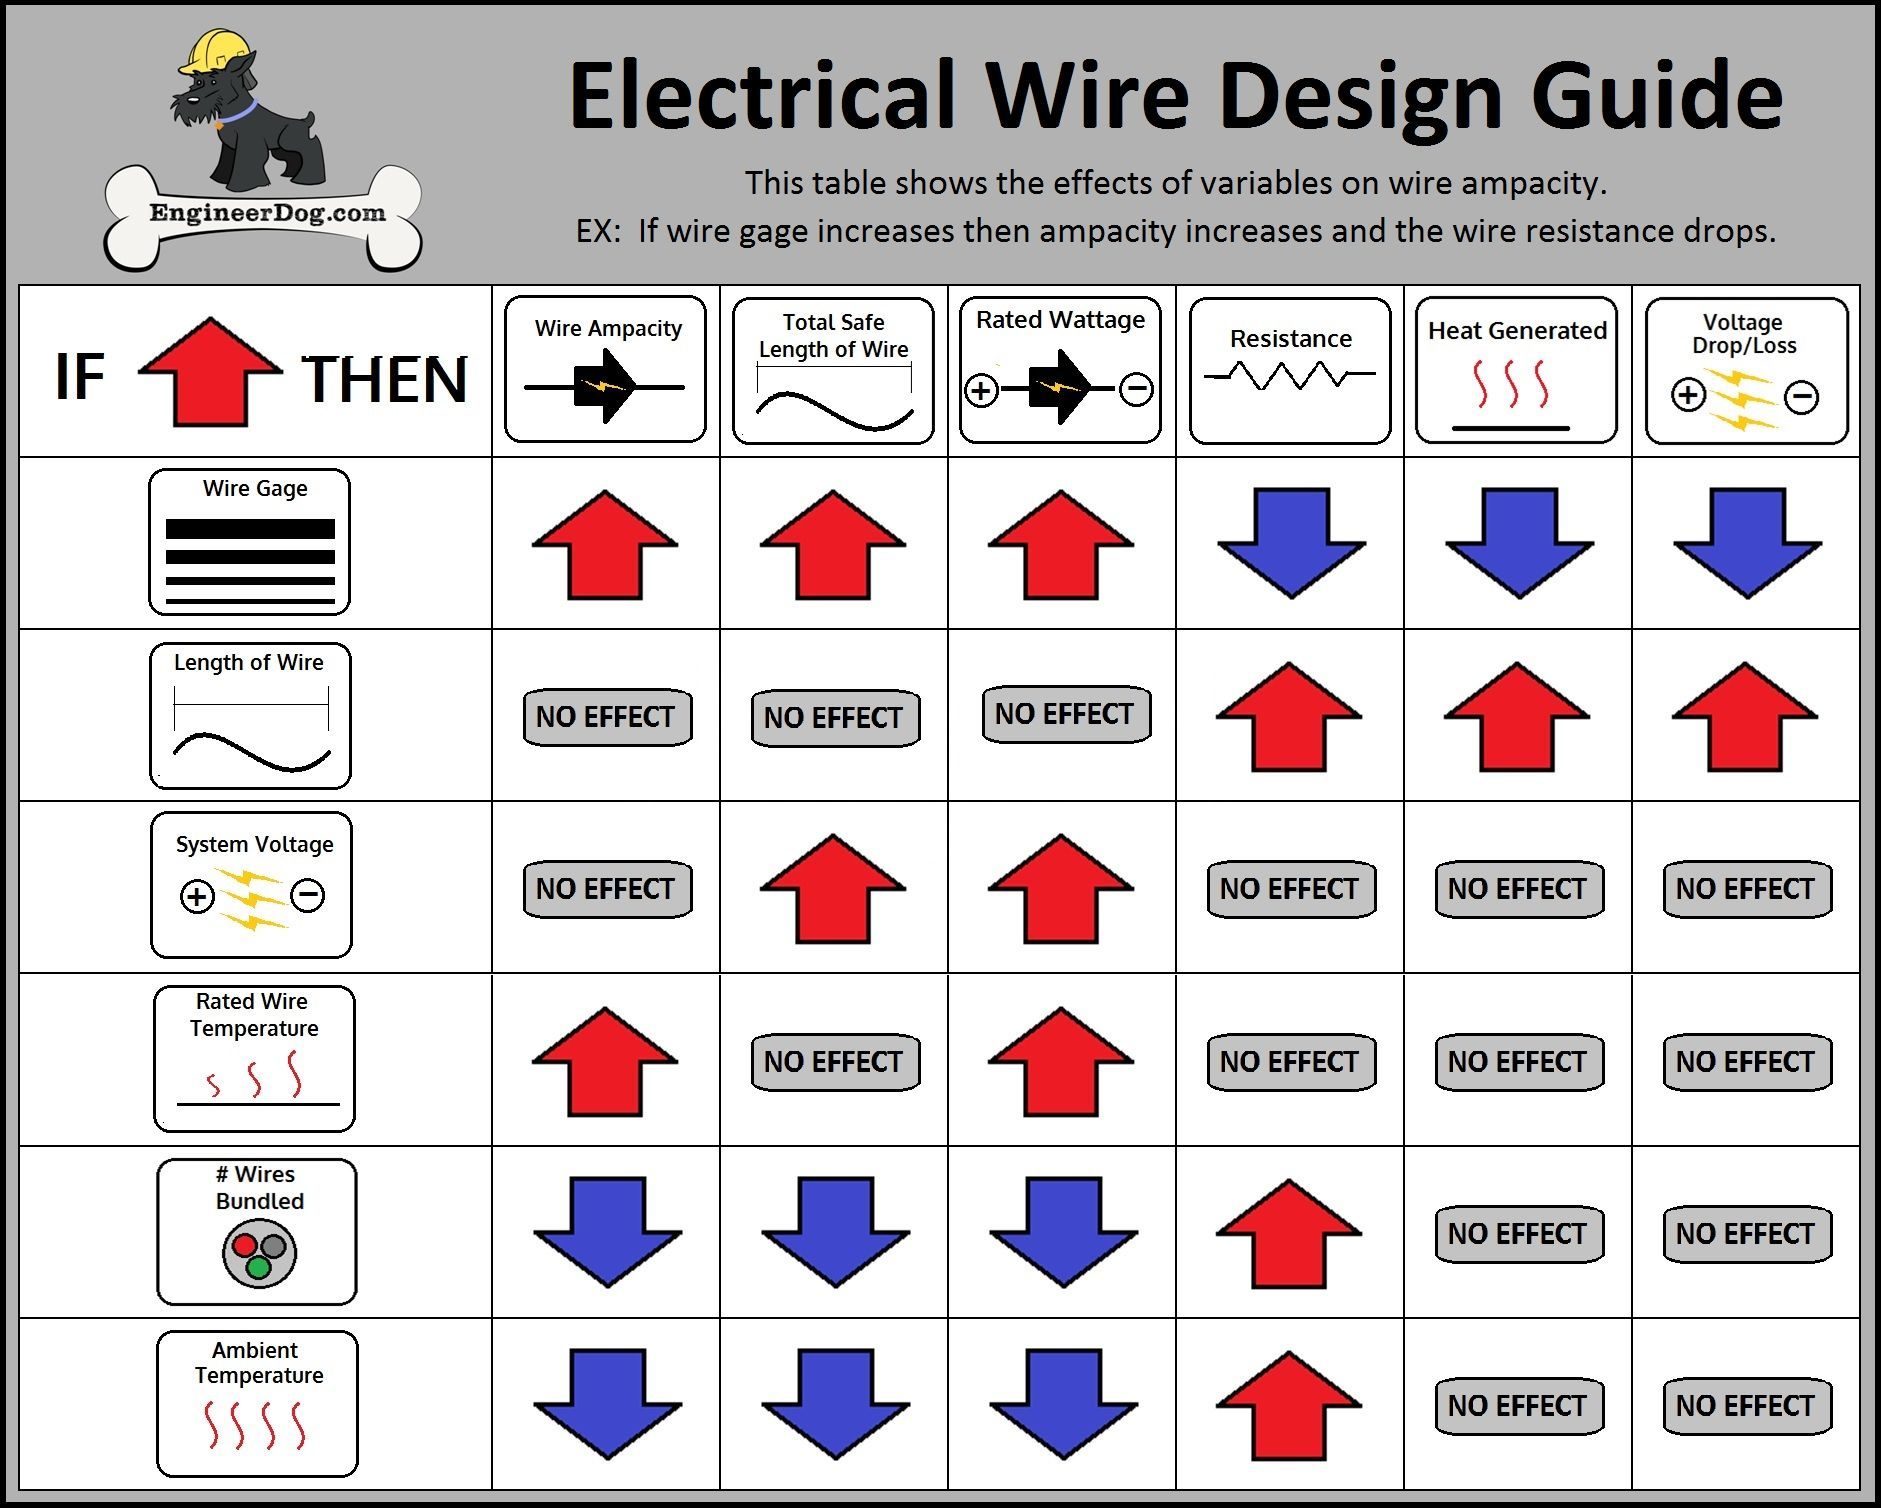 Electrical wire design guide see website for free wire gauge electrical wire design guide see website for free wire gauge calculator guide greentooth Choice Image